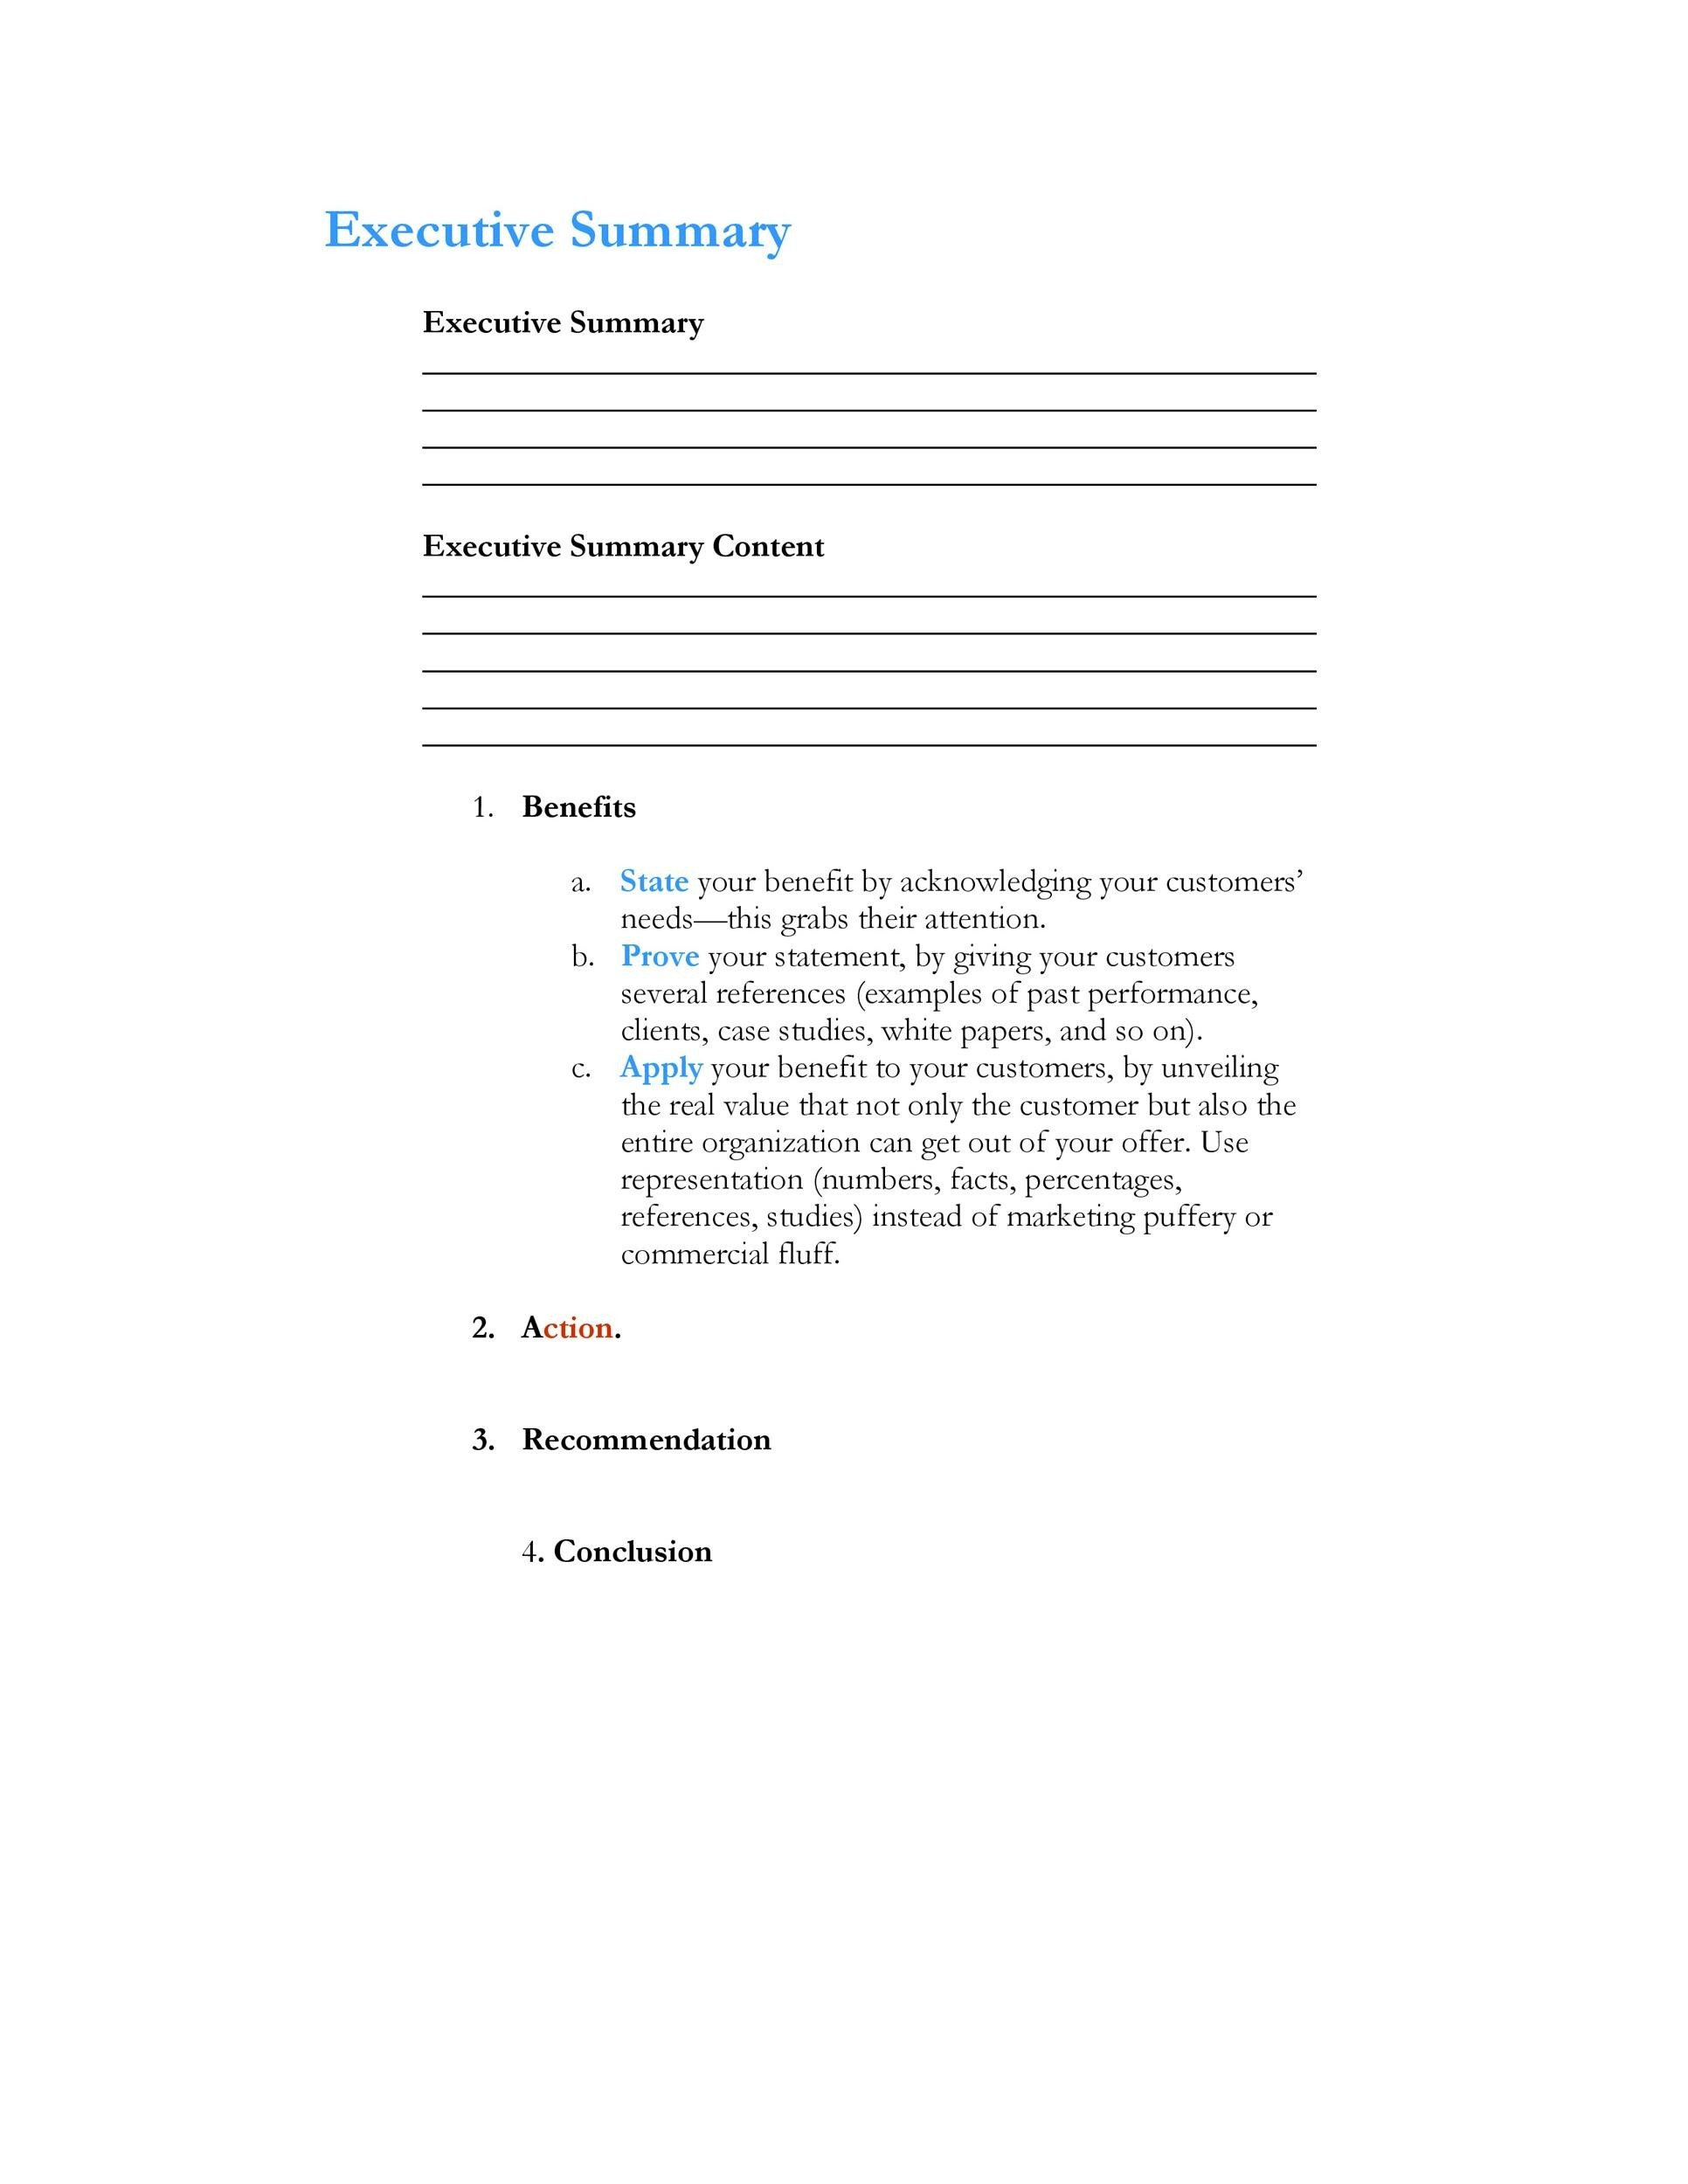 Executive Summary Template 16